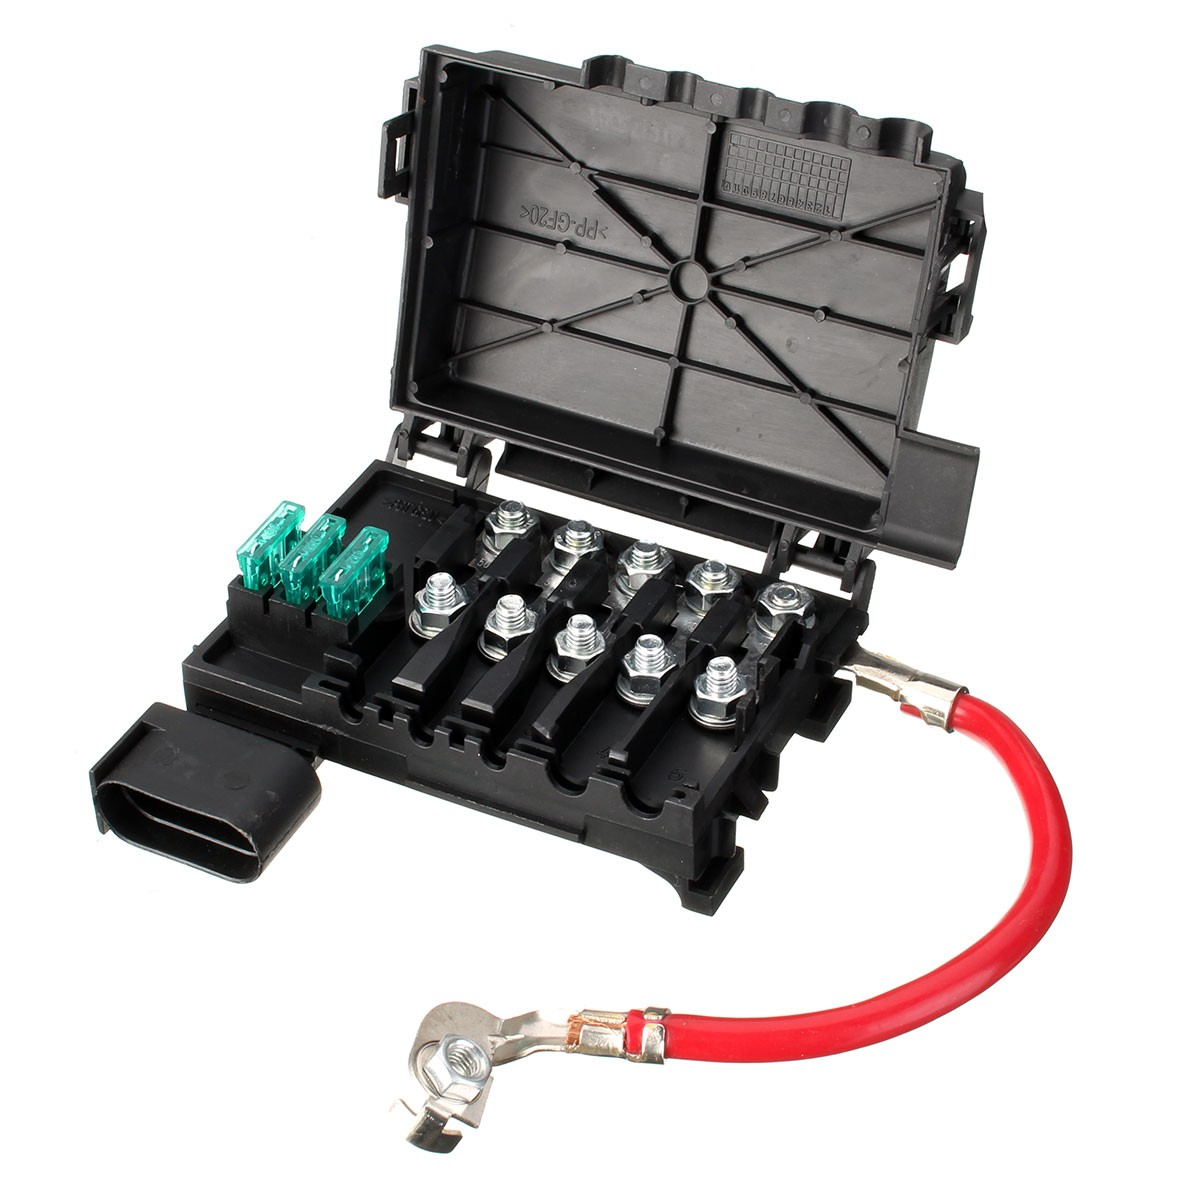 new fuse box for vw beetle golf jetta 1j0937617d 1j0937550 1j0937550aa 1j0937550ab ac ad in fuses from automobiles motorcycles on aliexpress com  [ 1200 x 1200 Pixel ]